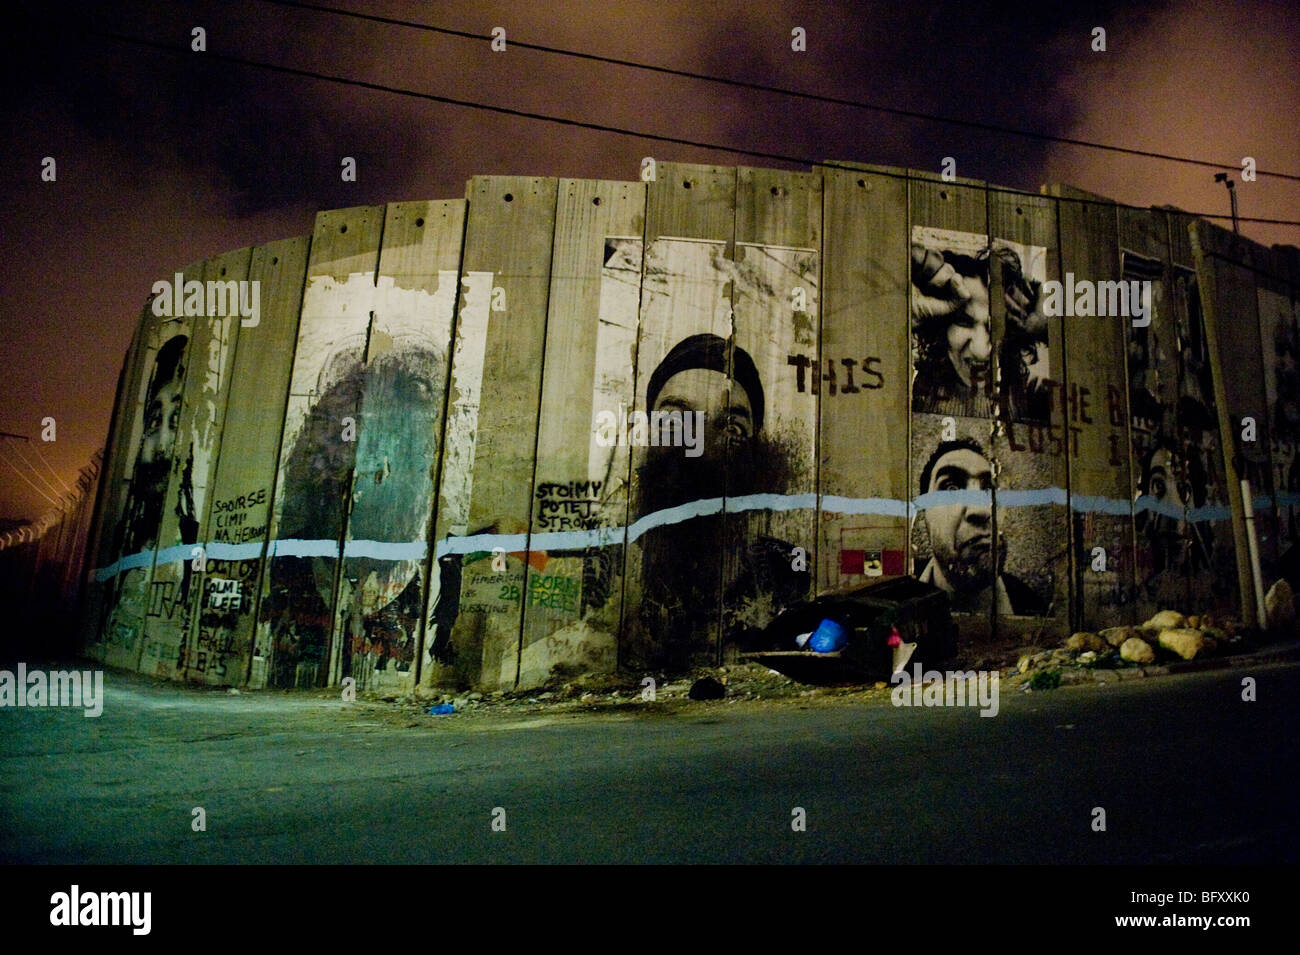 Bethlehem security barrier in the occupied west bank, Palestine. - Stock Image